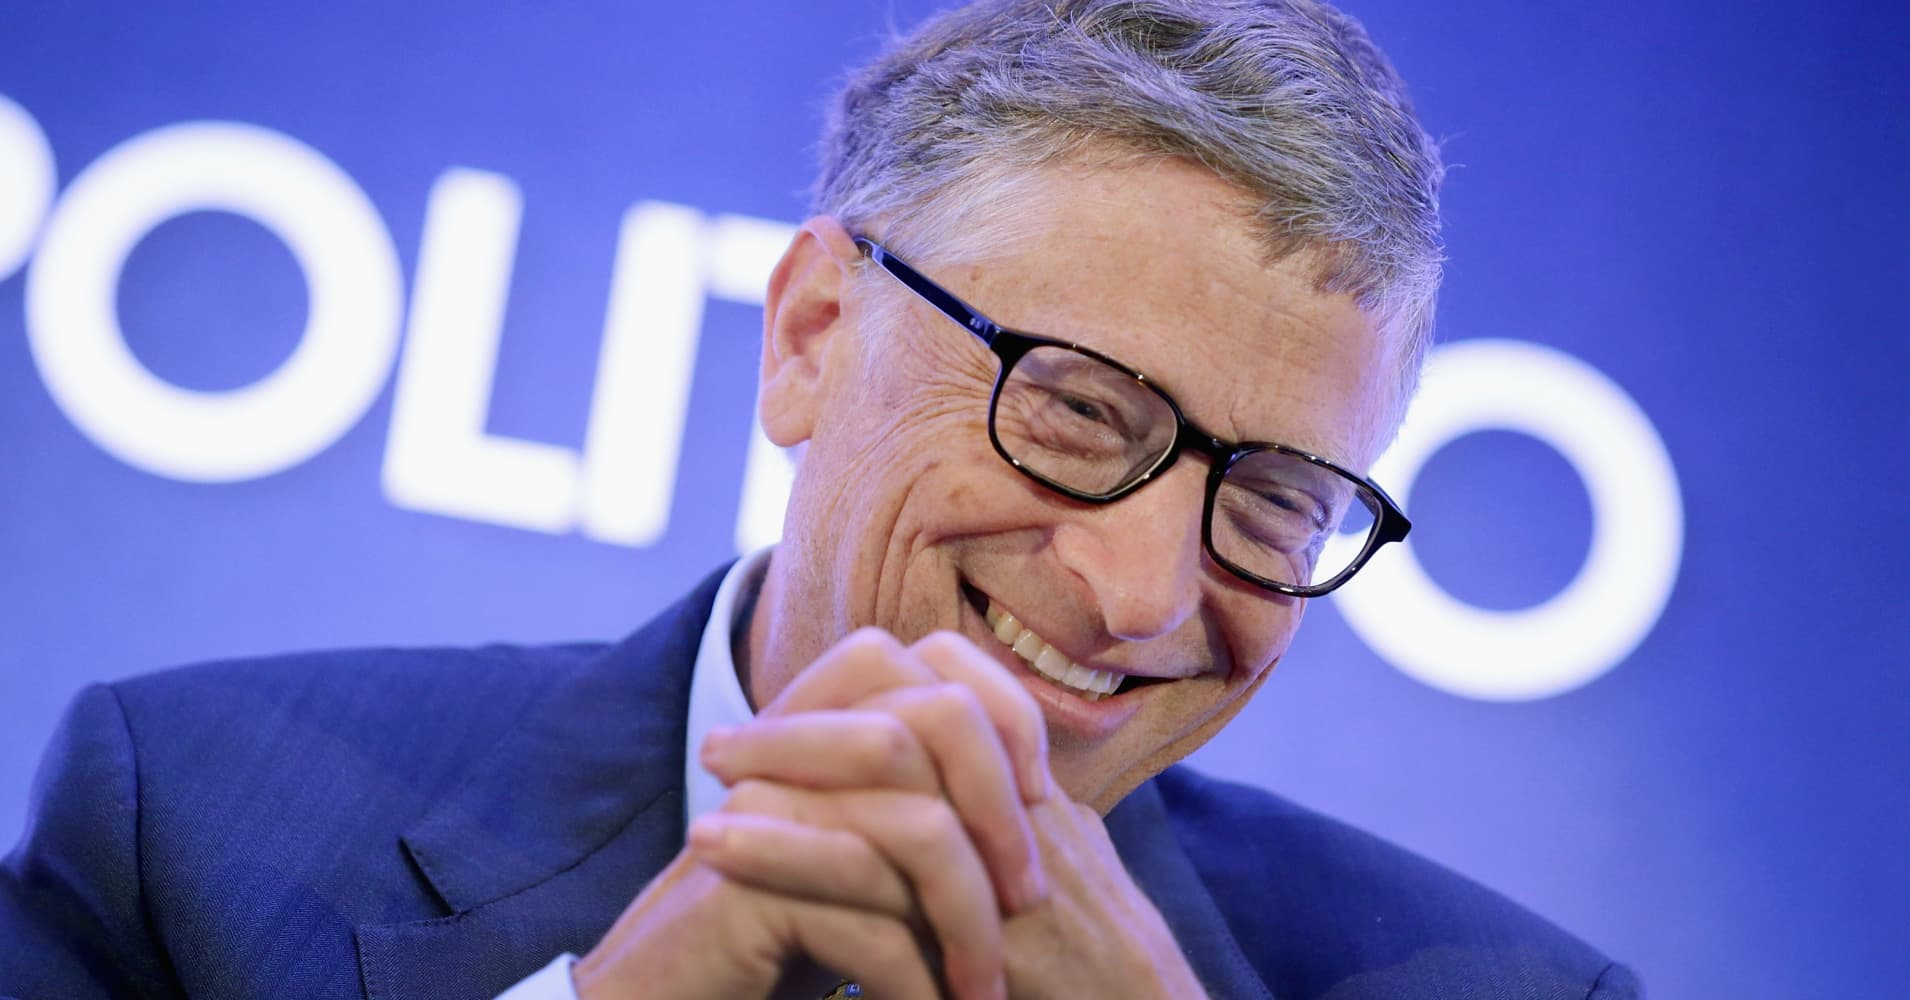 It's World Book Day—here are the favorites of 7 self-made billionaires